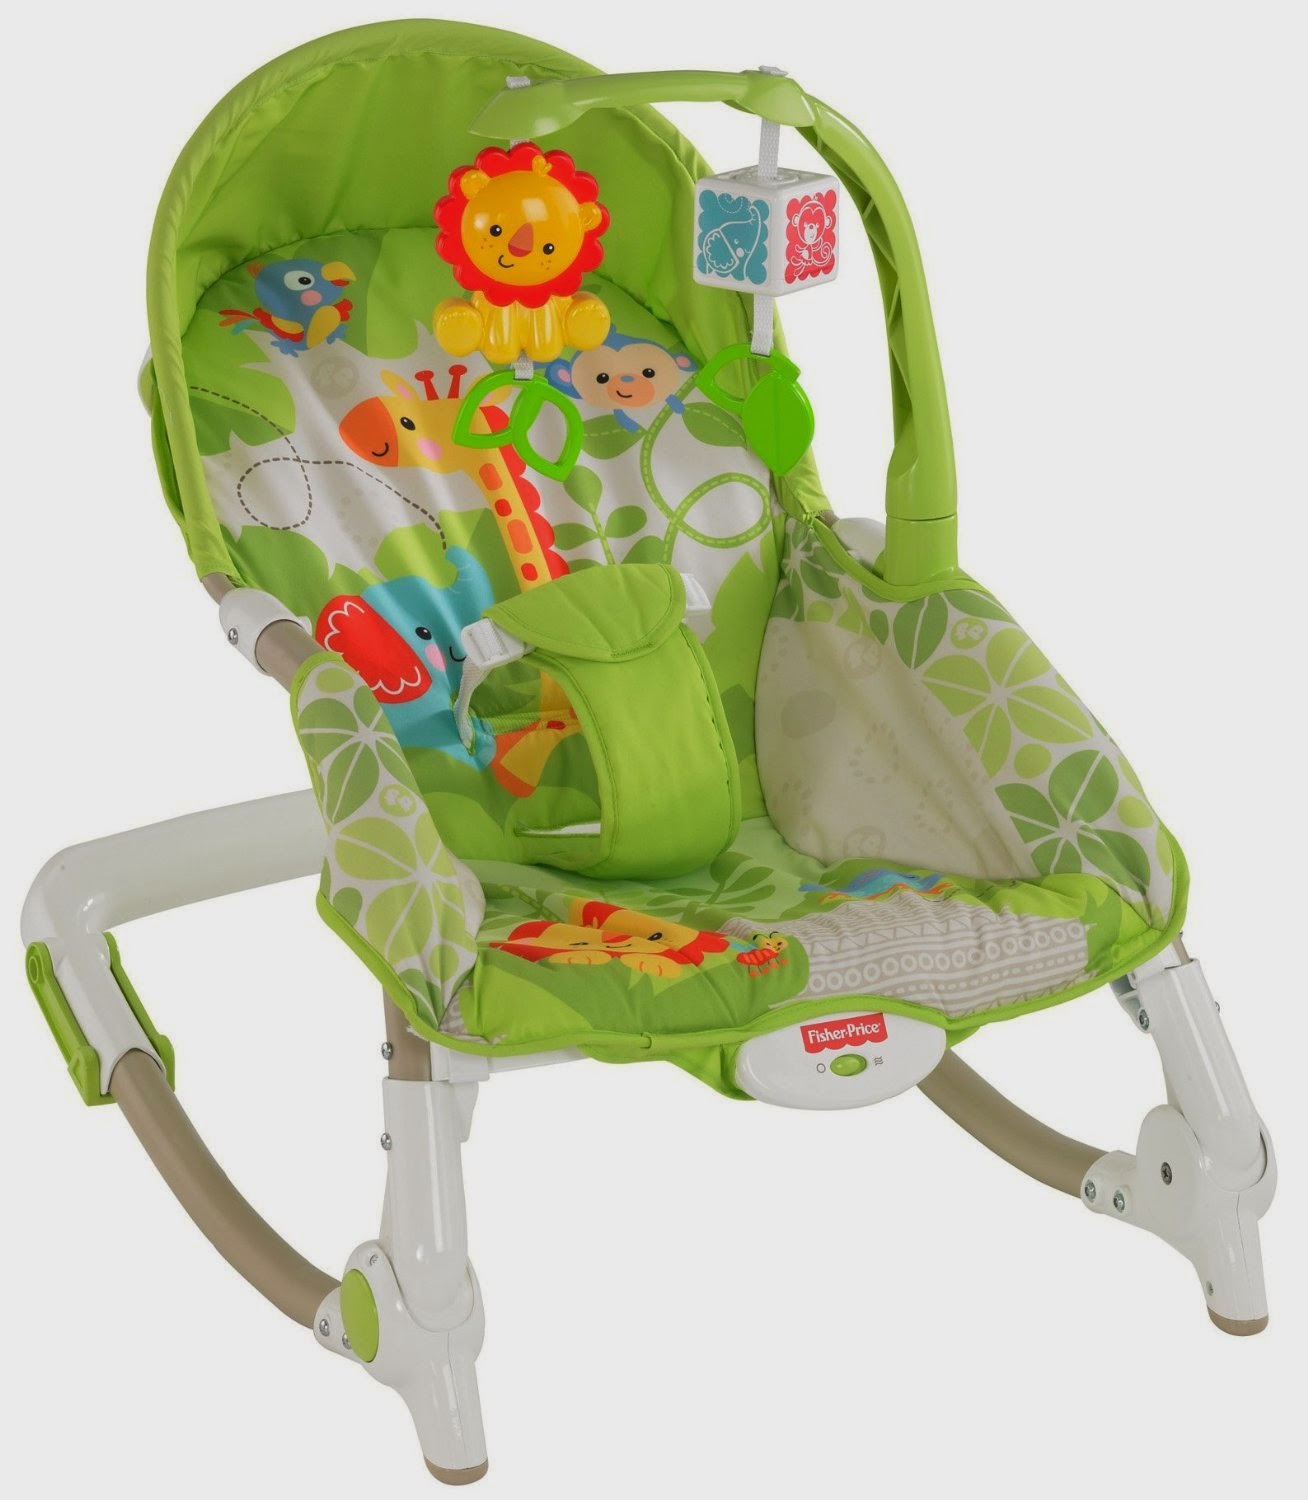 https://www.amazon.com/Fisher-Price-BML89-Newborn-to-Toddler-Portable-Rocker/dp/B00CWN3HSU/ref=as_li_ss_til?tag=soutsubusavi-20&linkCode=w01&creativeASIN=B00CWN3HSU